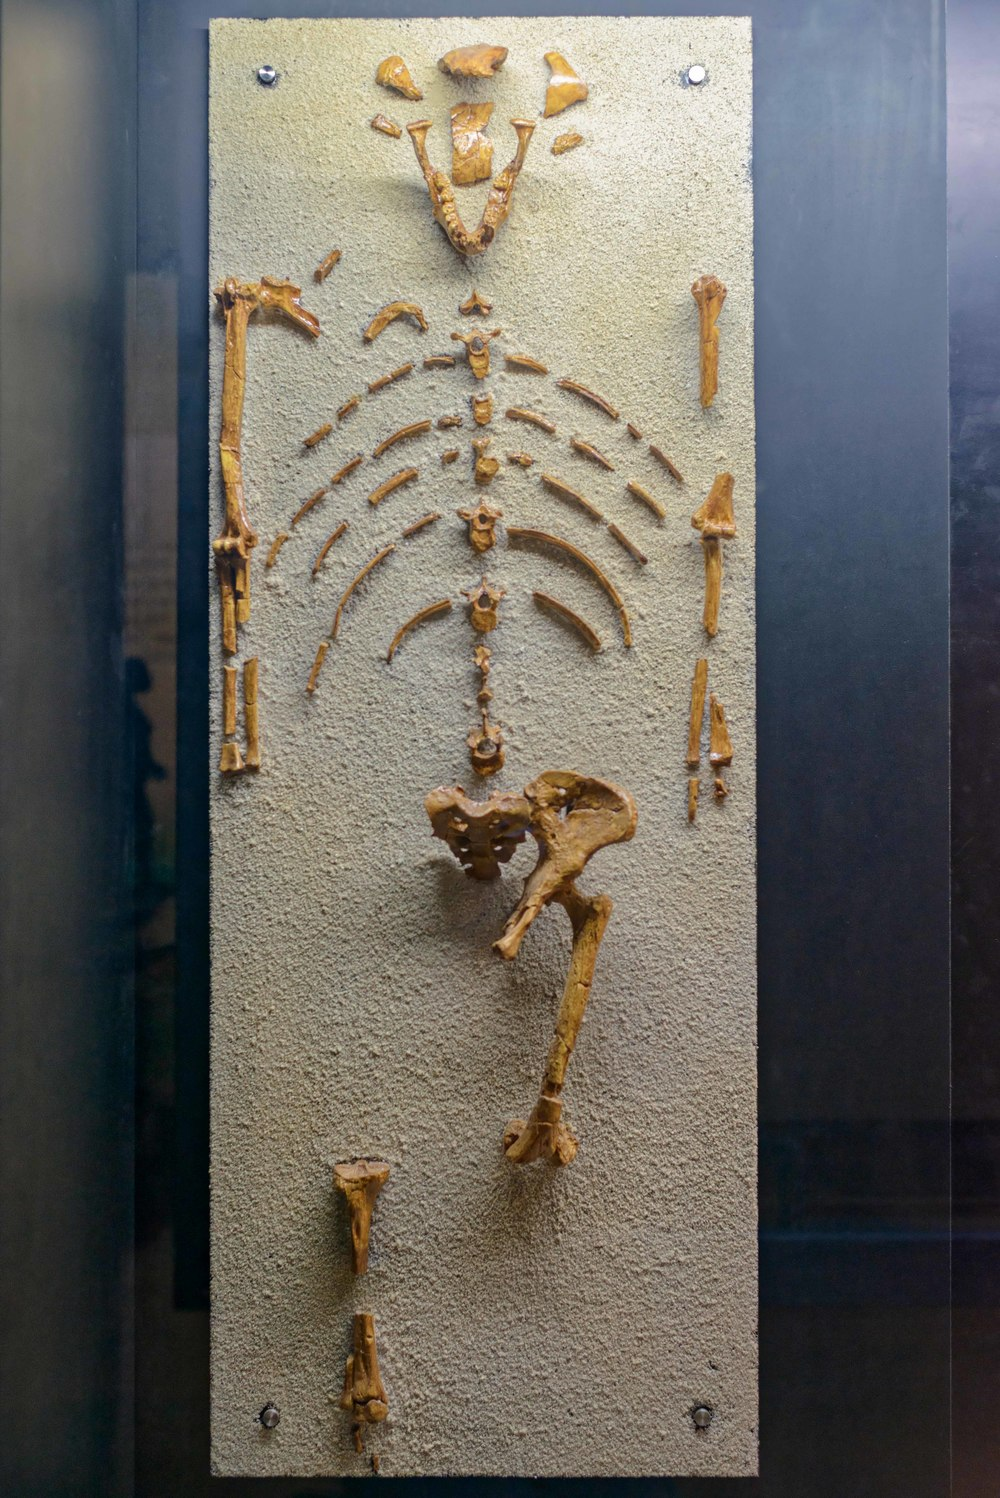 Lucy  is the partial skeleton of a 3.2-million-year-old  Australopithecus afarensis  from East Africa.It is arguably the most well-known hominid skeleton in the world. Dr Donald Johanson and his team discovered the skeleton in Hadar, Ethiopia, in 1974.